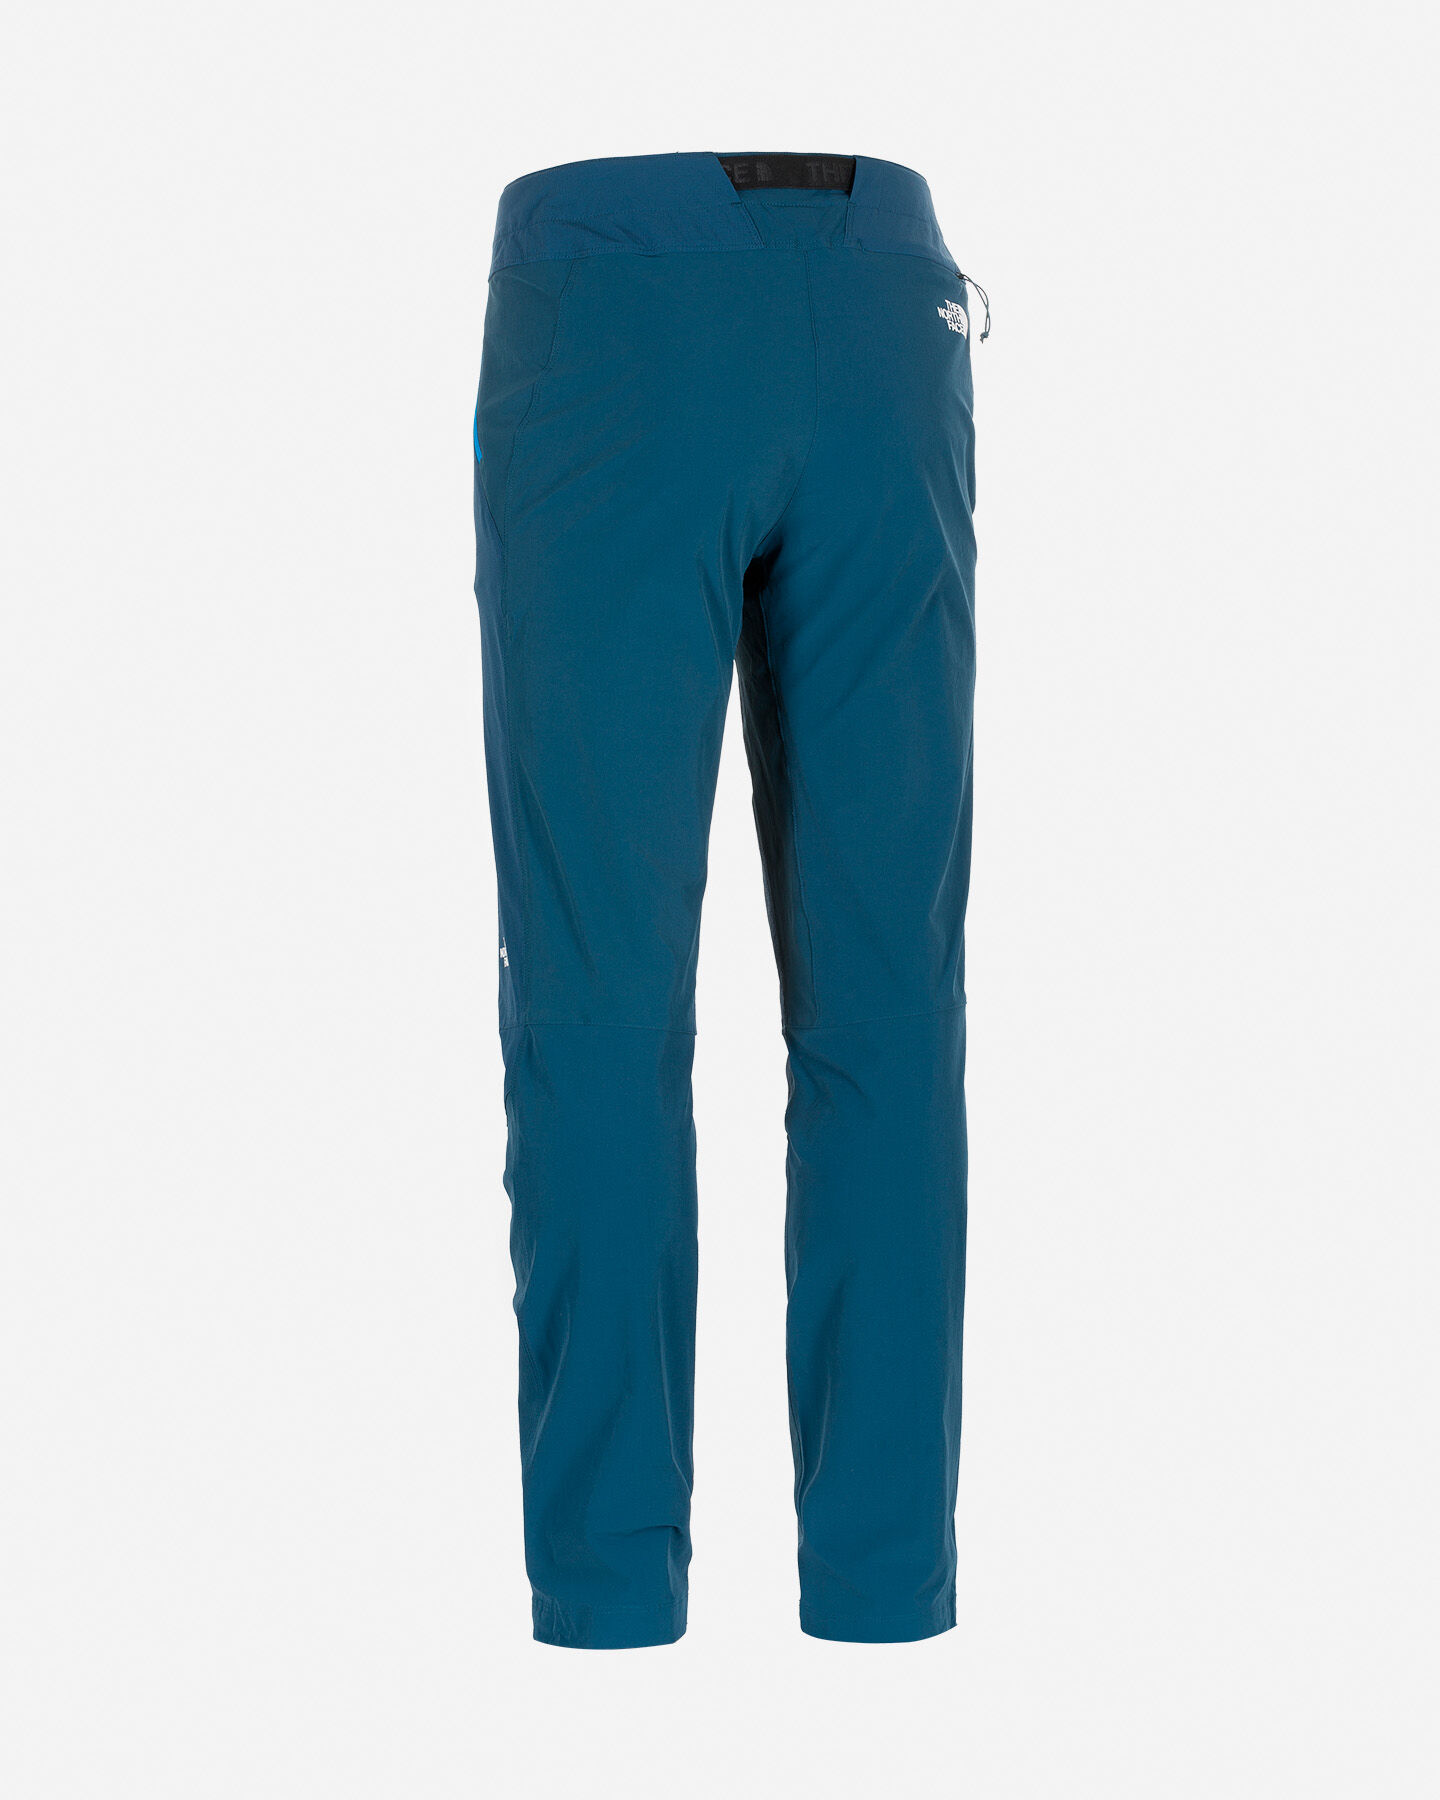 Pantalone outdoor THE NORTH FACE SPEEDLIGHT II WING TEAL M S5184167 scatto 1